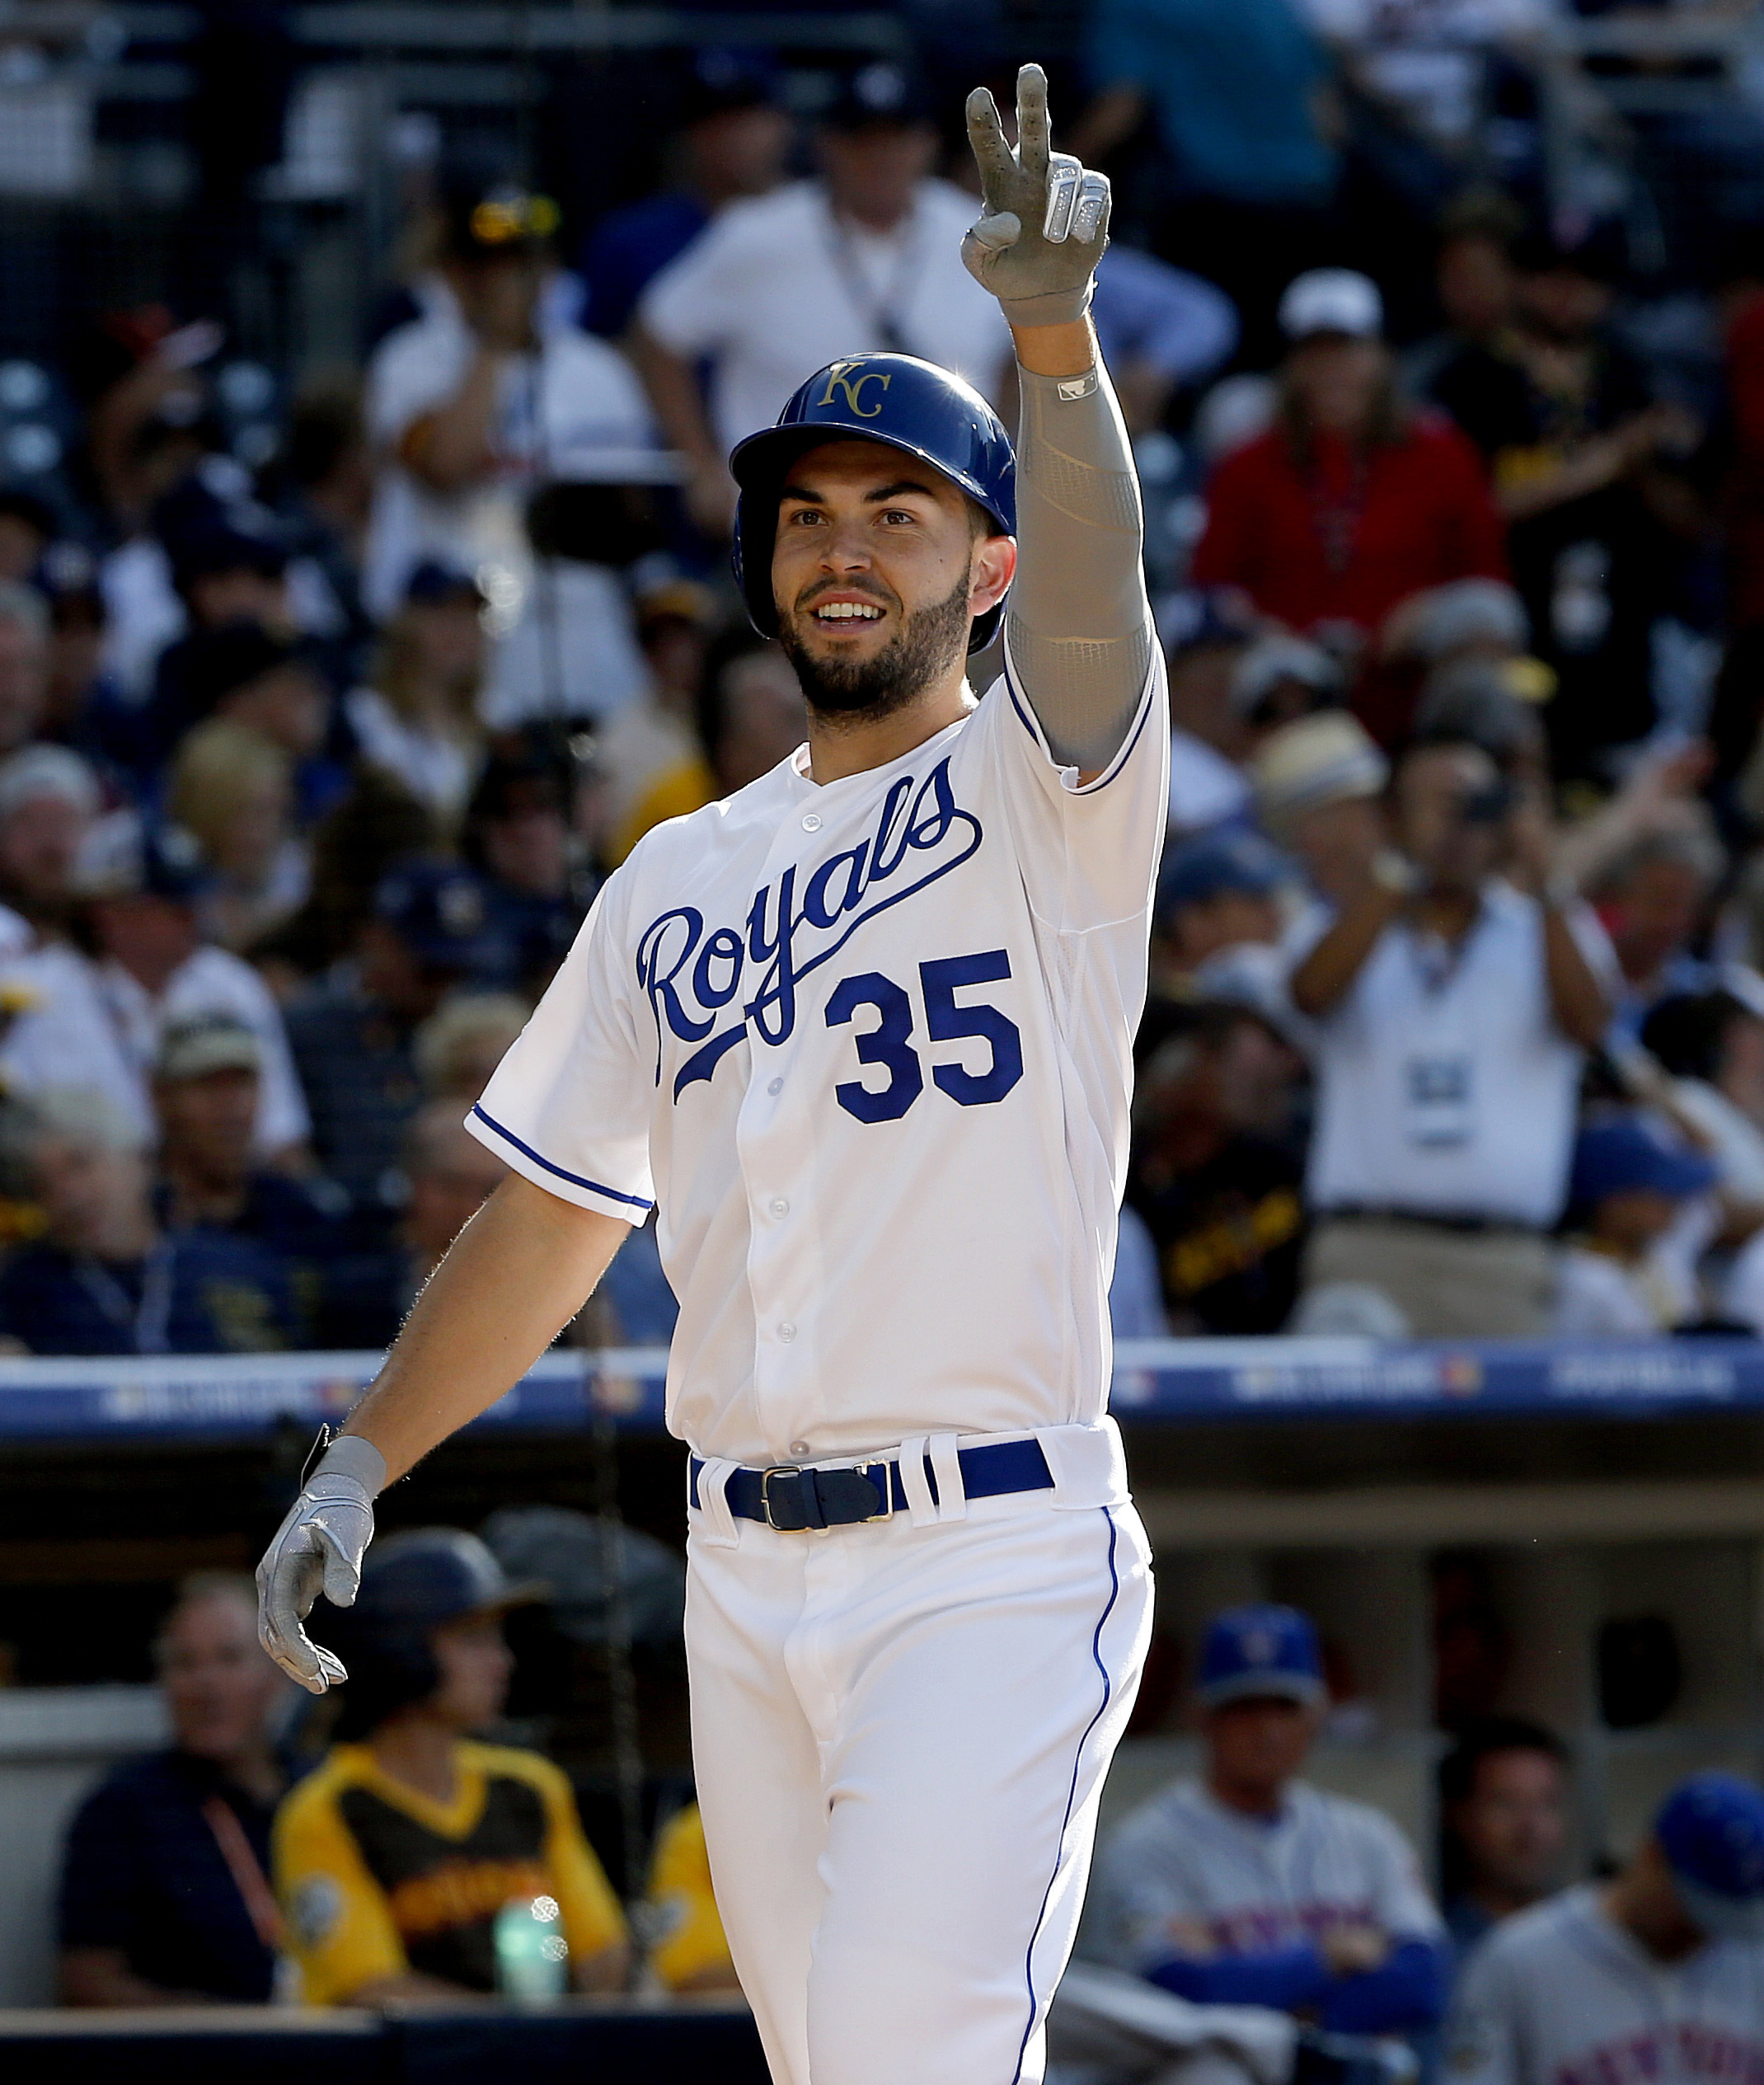 American League's Eric Hosmer, of the Kansas City Royals, celebrates his solo home run against the National League during the second inning of the MLB baseball All-Star Game, Tuesday, July 12, 2016, in San Diego. (AP Photo/Lenny Ignelzi)